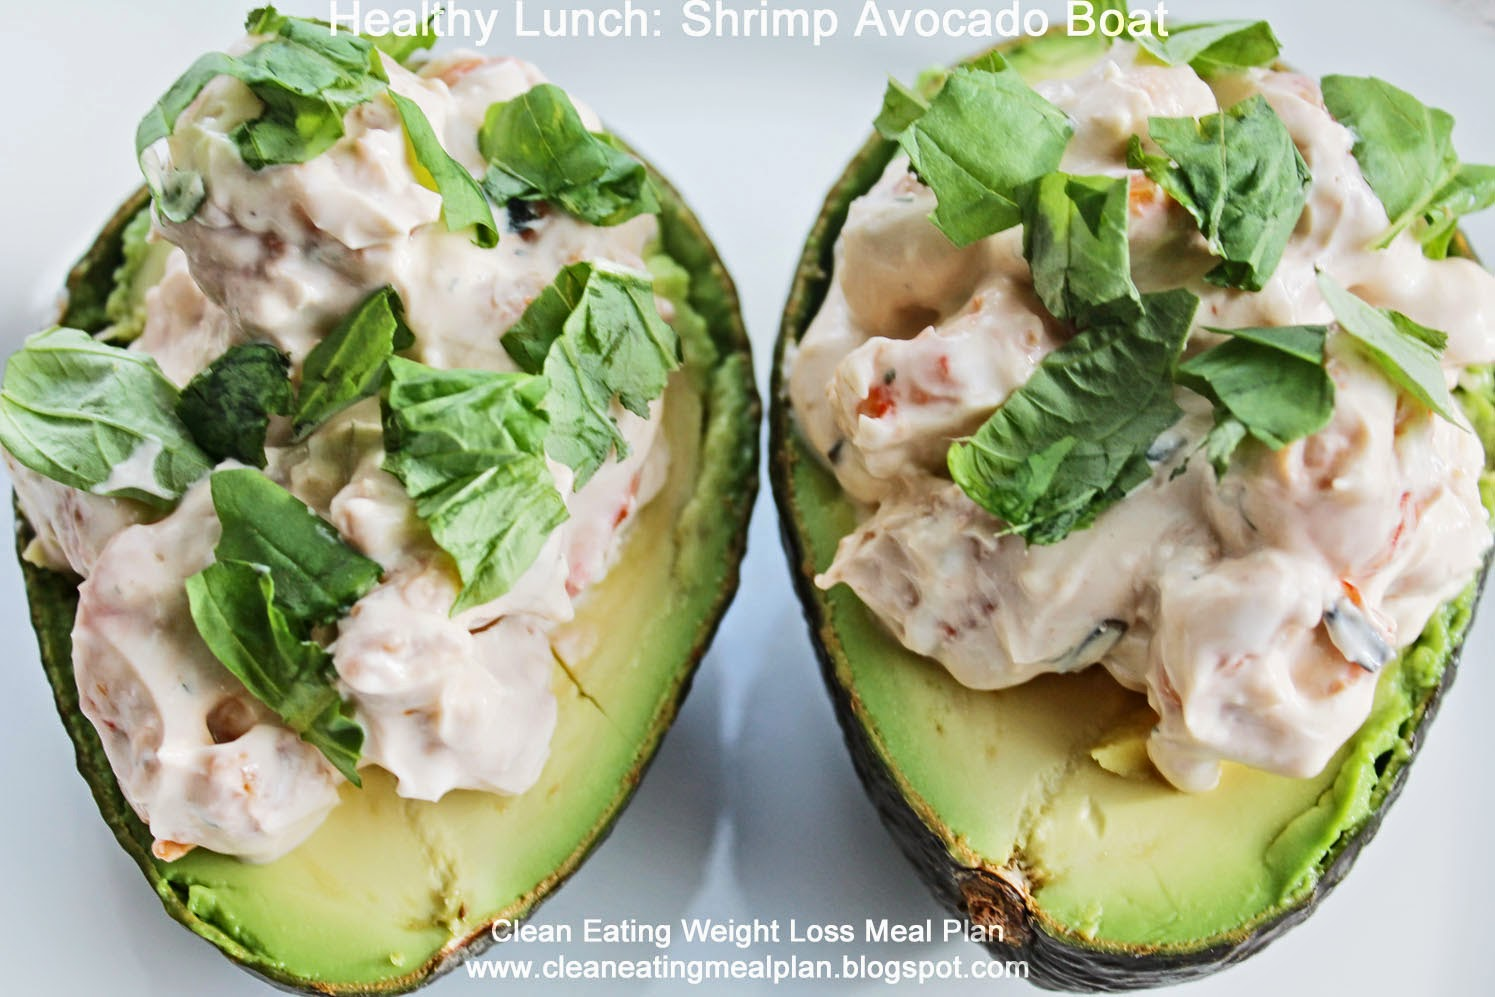 18 CLEAN EATING DIET RECIPES FOR AVOCADO LOVERS